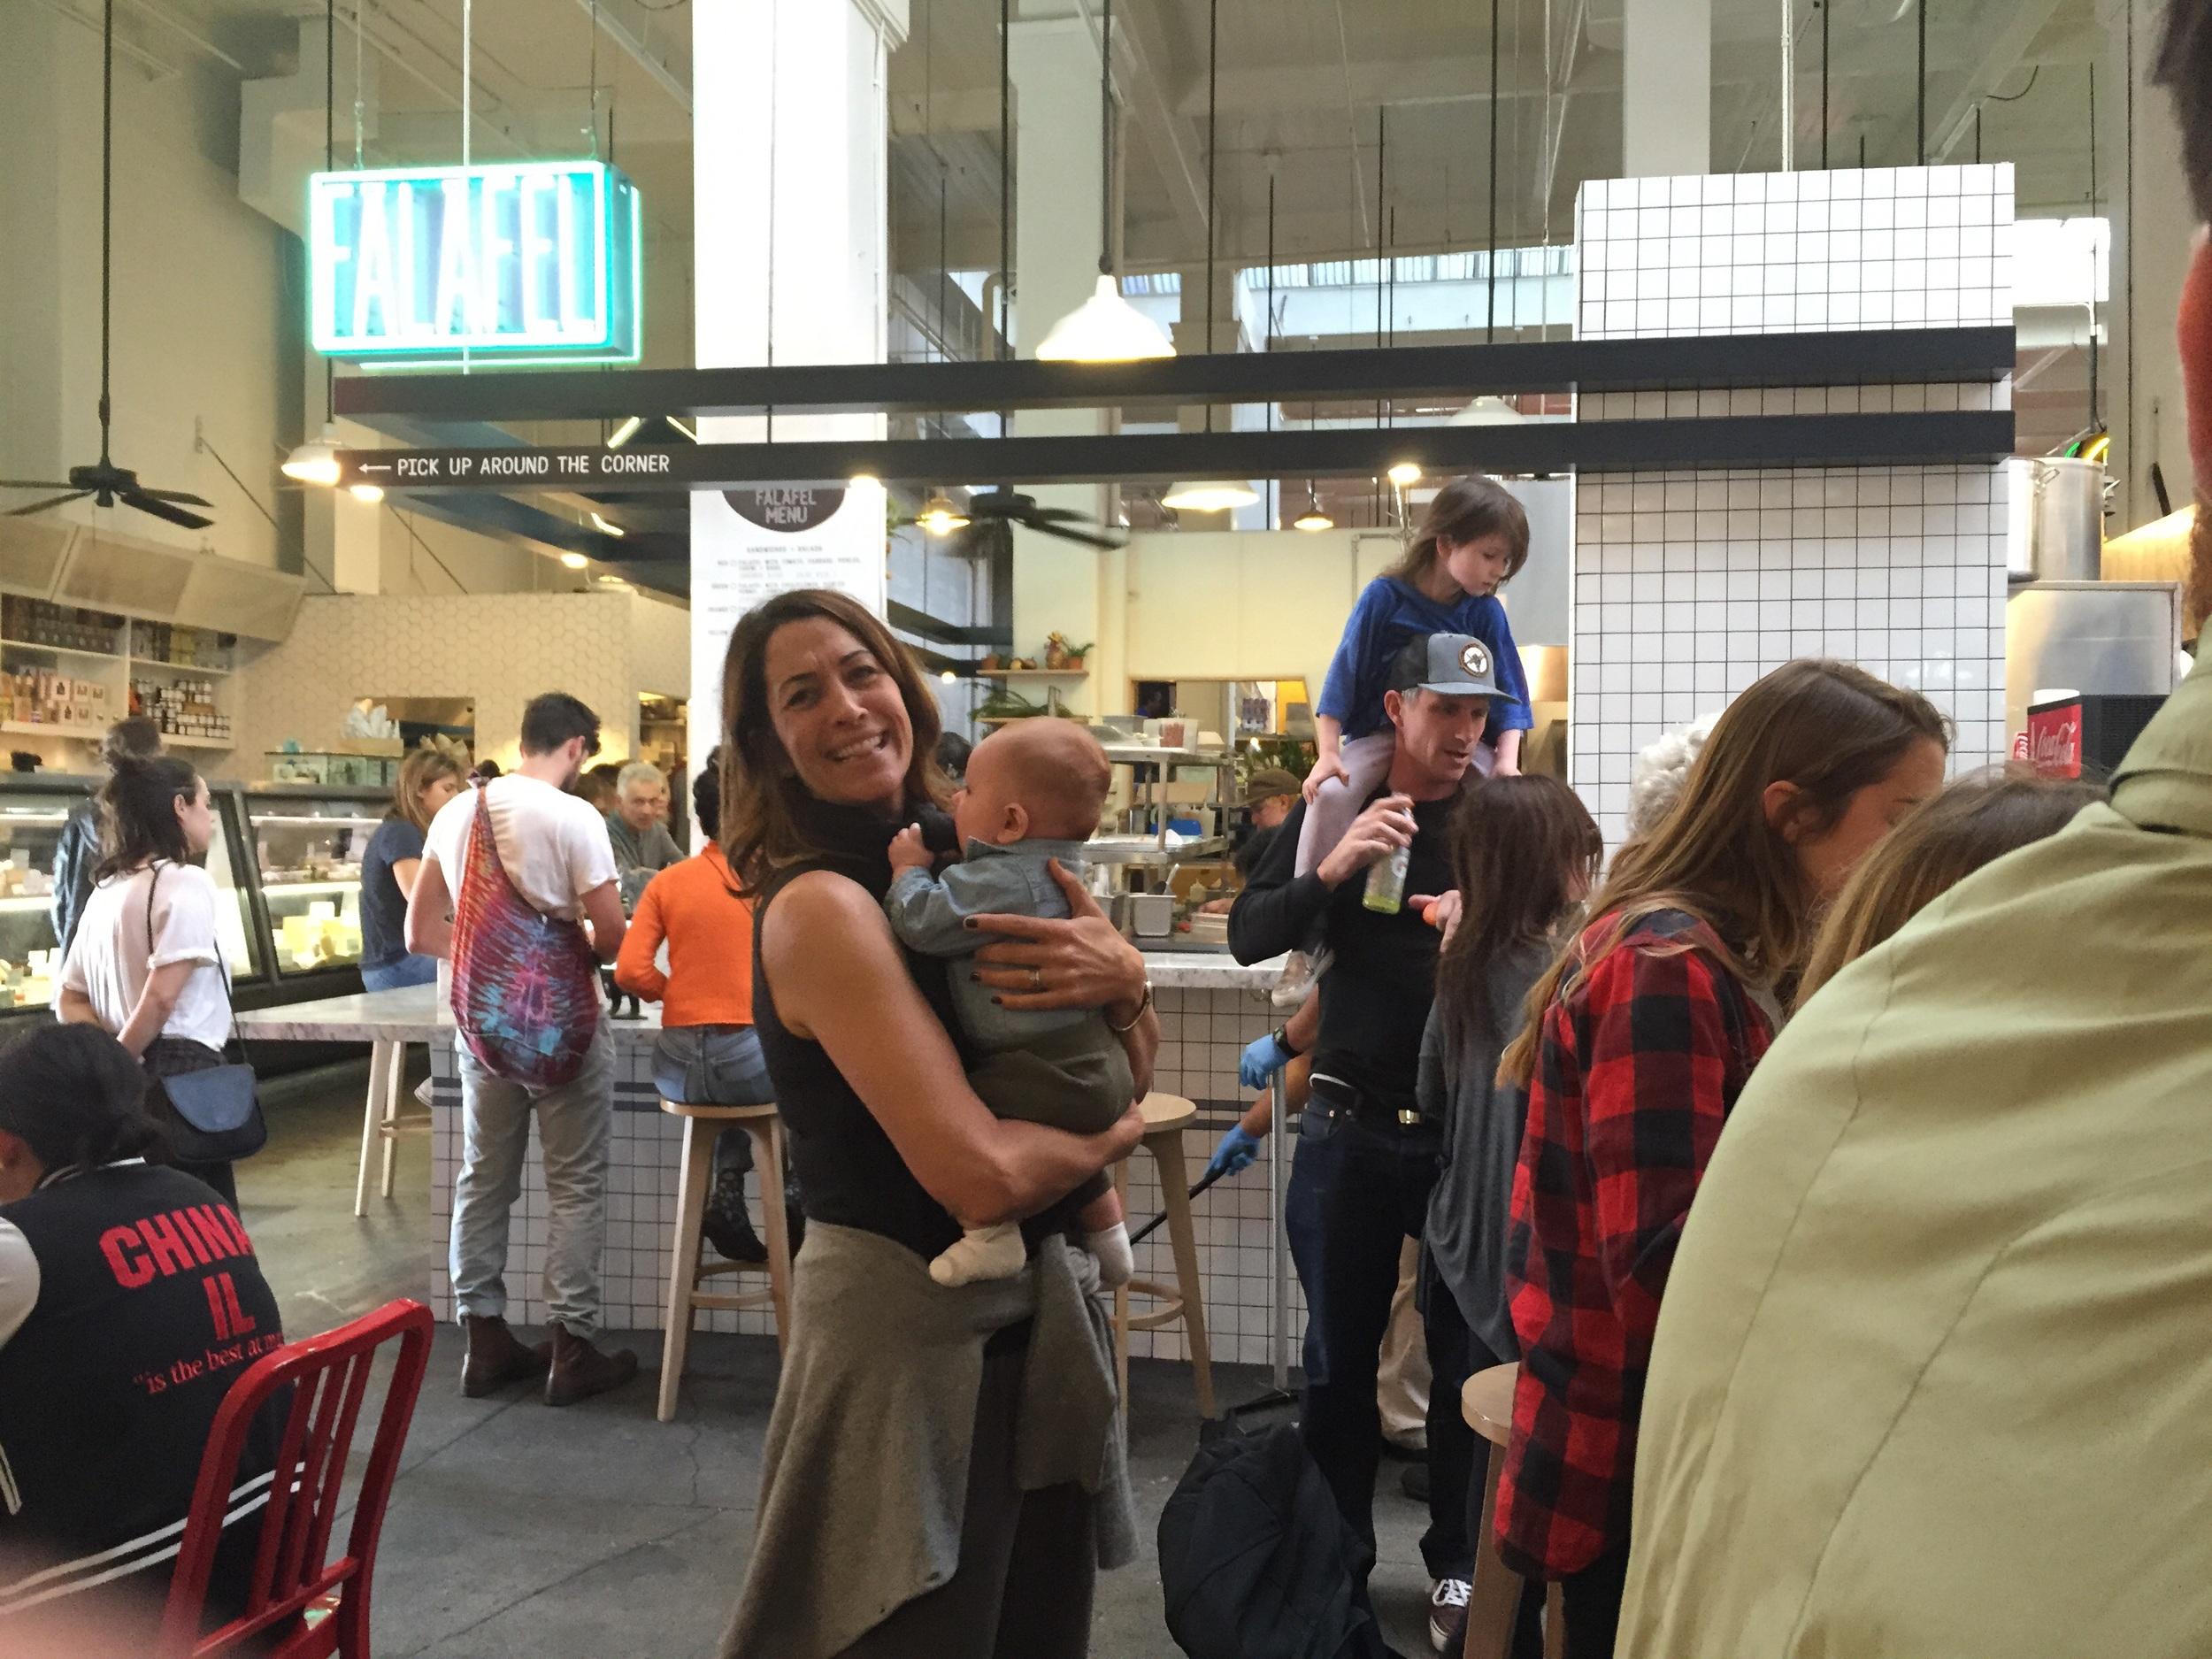 Having lunch at The Grand Central Market